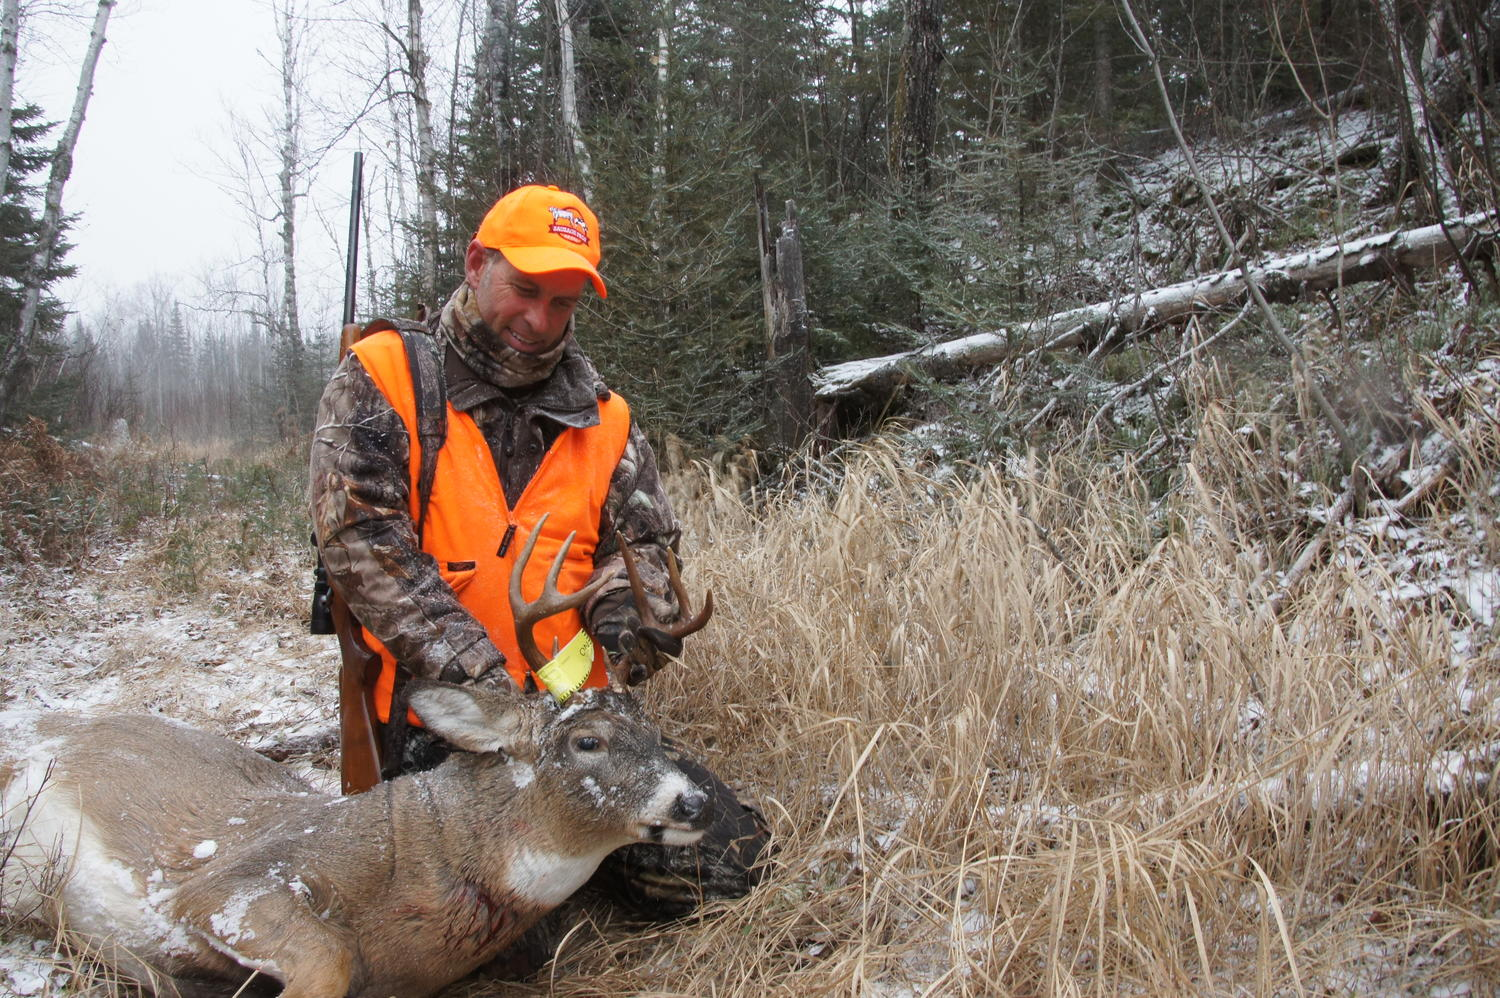 tips pros bowhunting blind ground blinds a deer from hunting